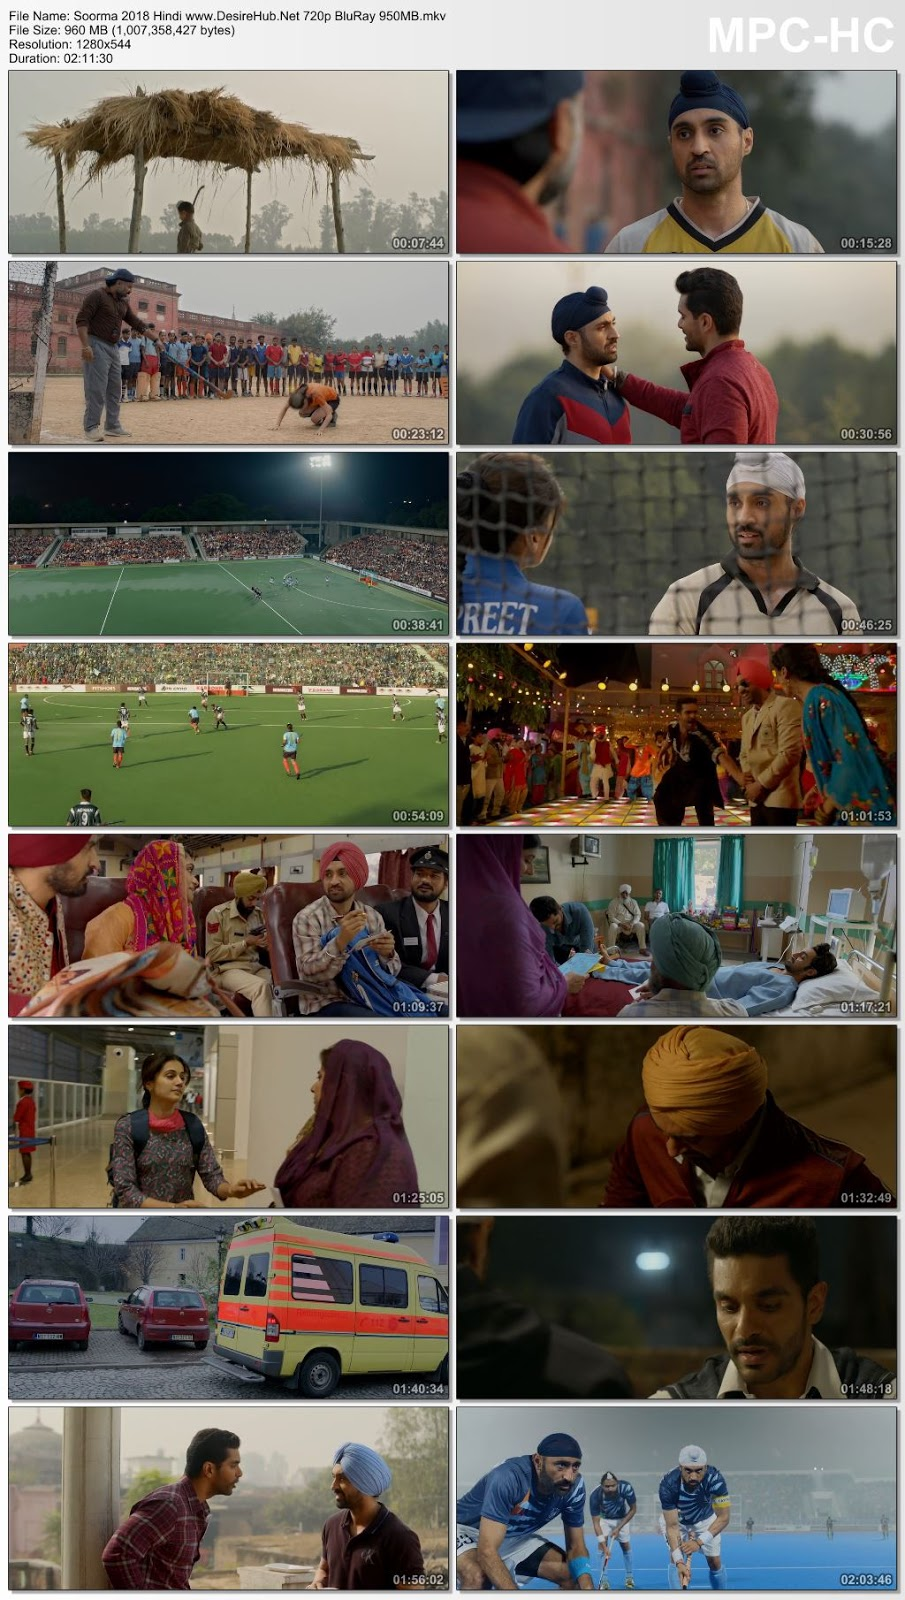 Soorma 2018 Hindi 480p BluRay 350MB Desirehub